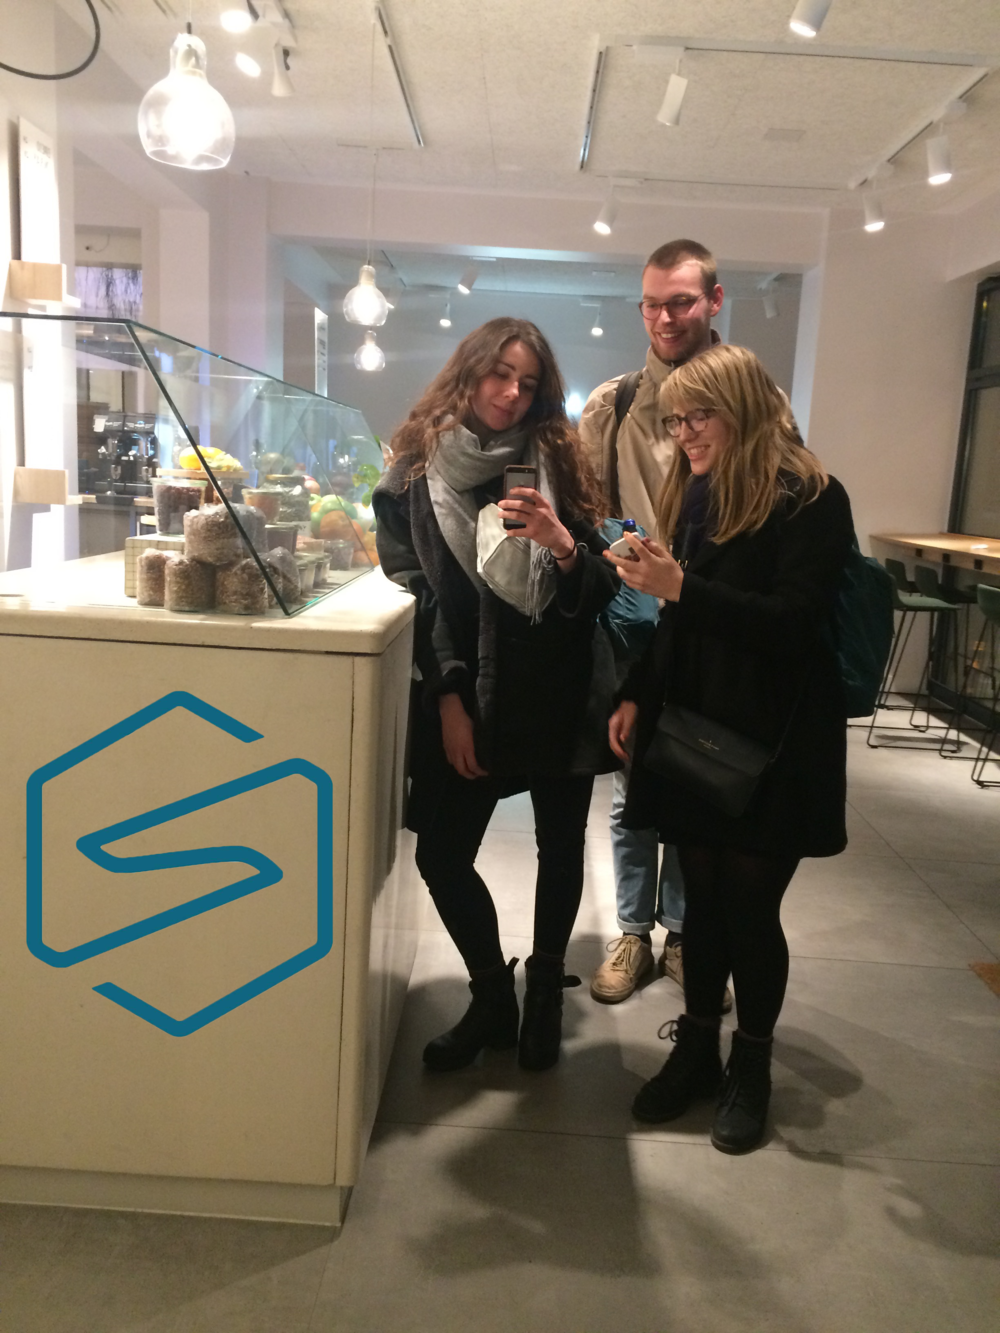 Your hardworking SWM team, occupying Berlin's coworking spaces until they close!